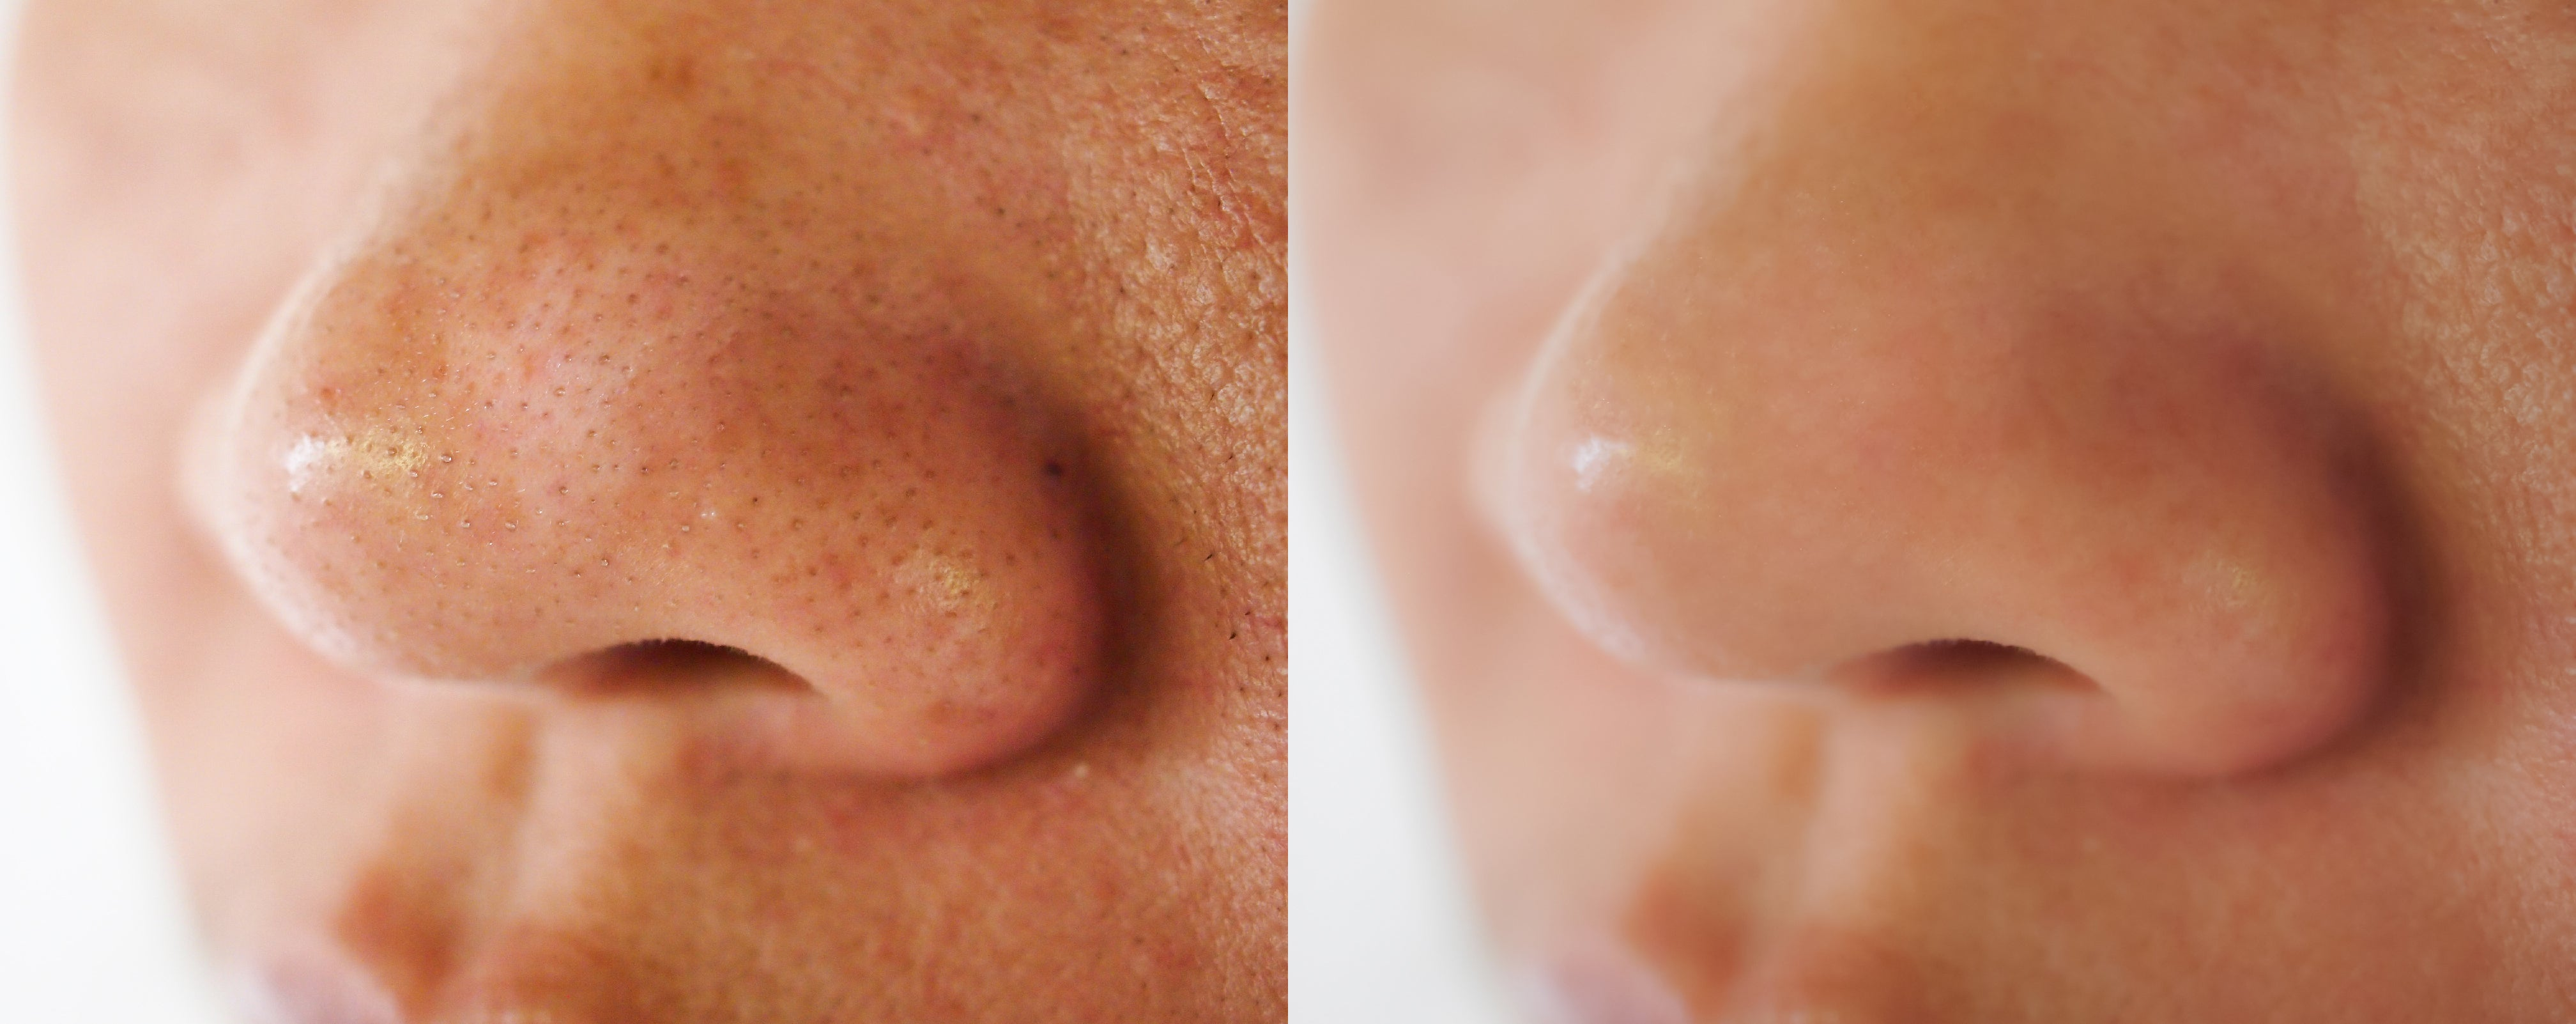 before and after treatment of skin purging